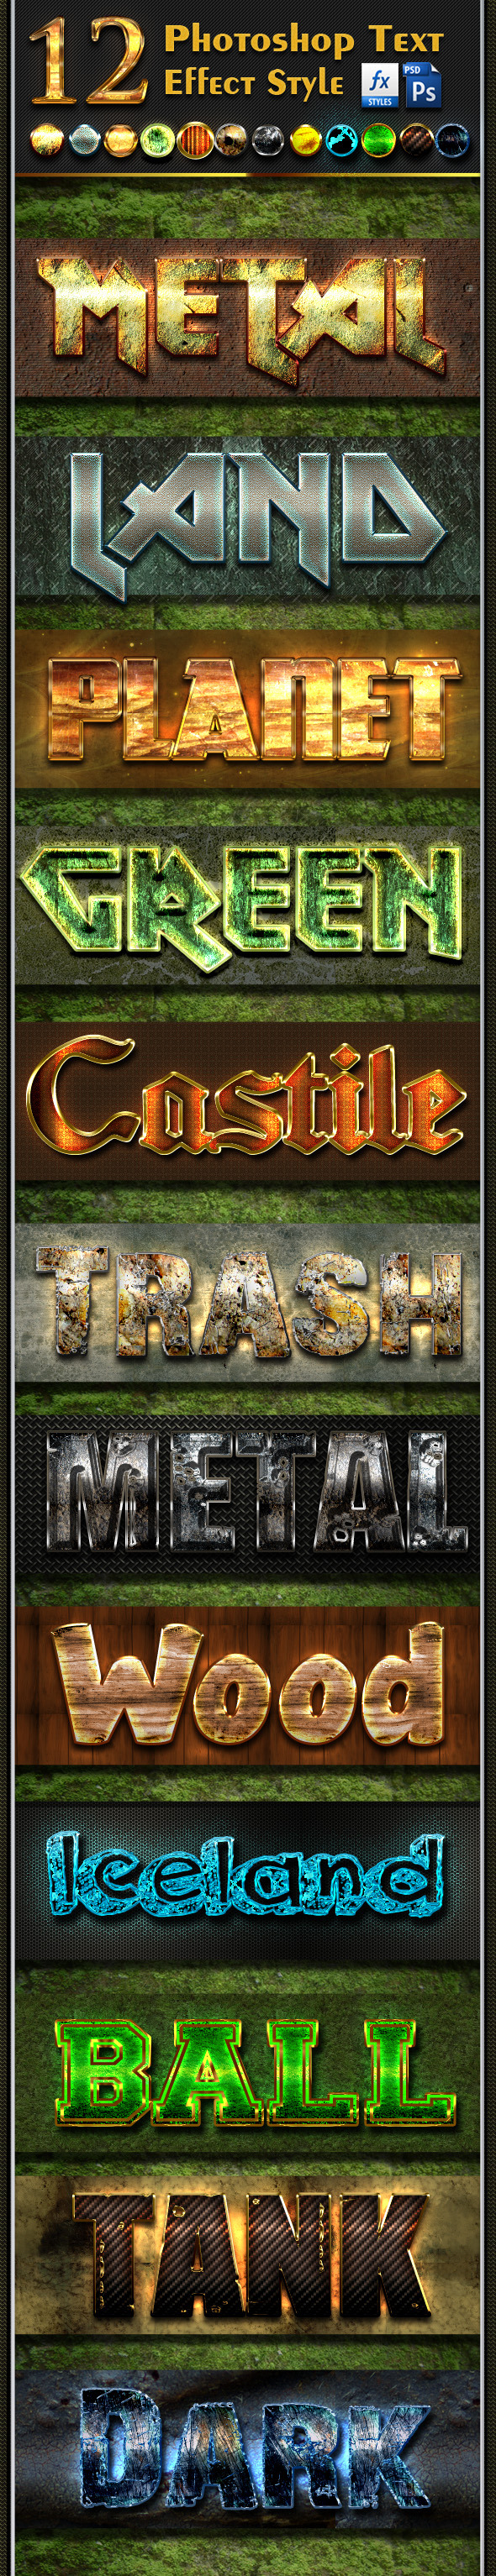 GraphicRiver 12 Photoshop Text Effect Styles Vol 8 10937944